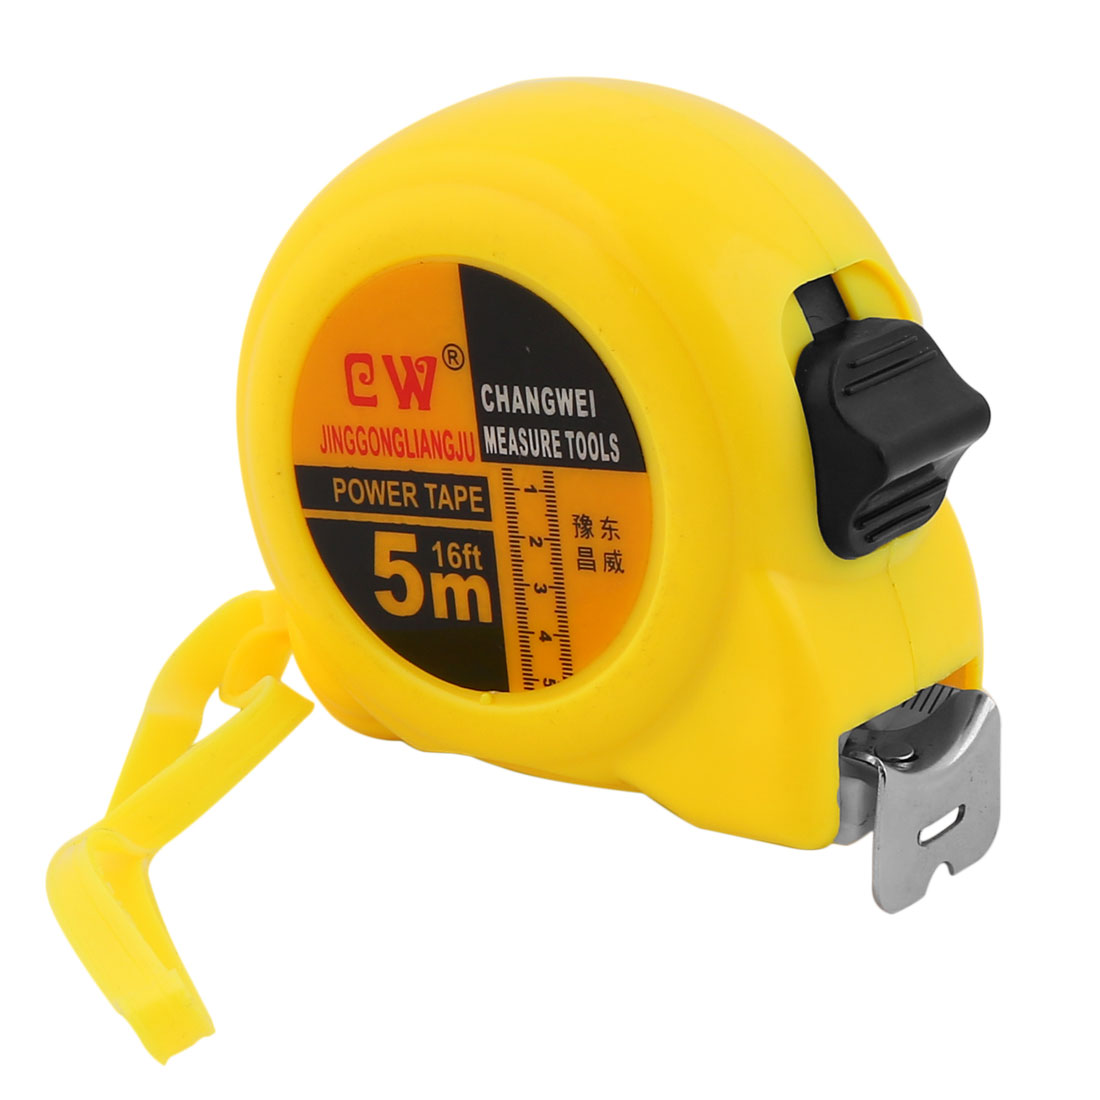 Plastic Shell Retractable Flexible Tape Measure Ruler 5 Meter 16Ft Yellow